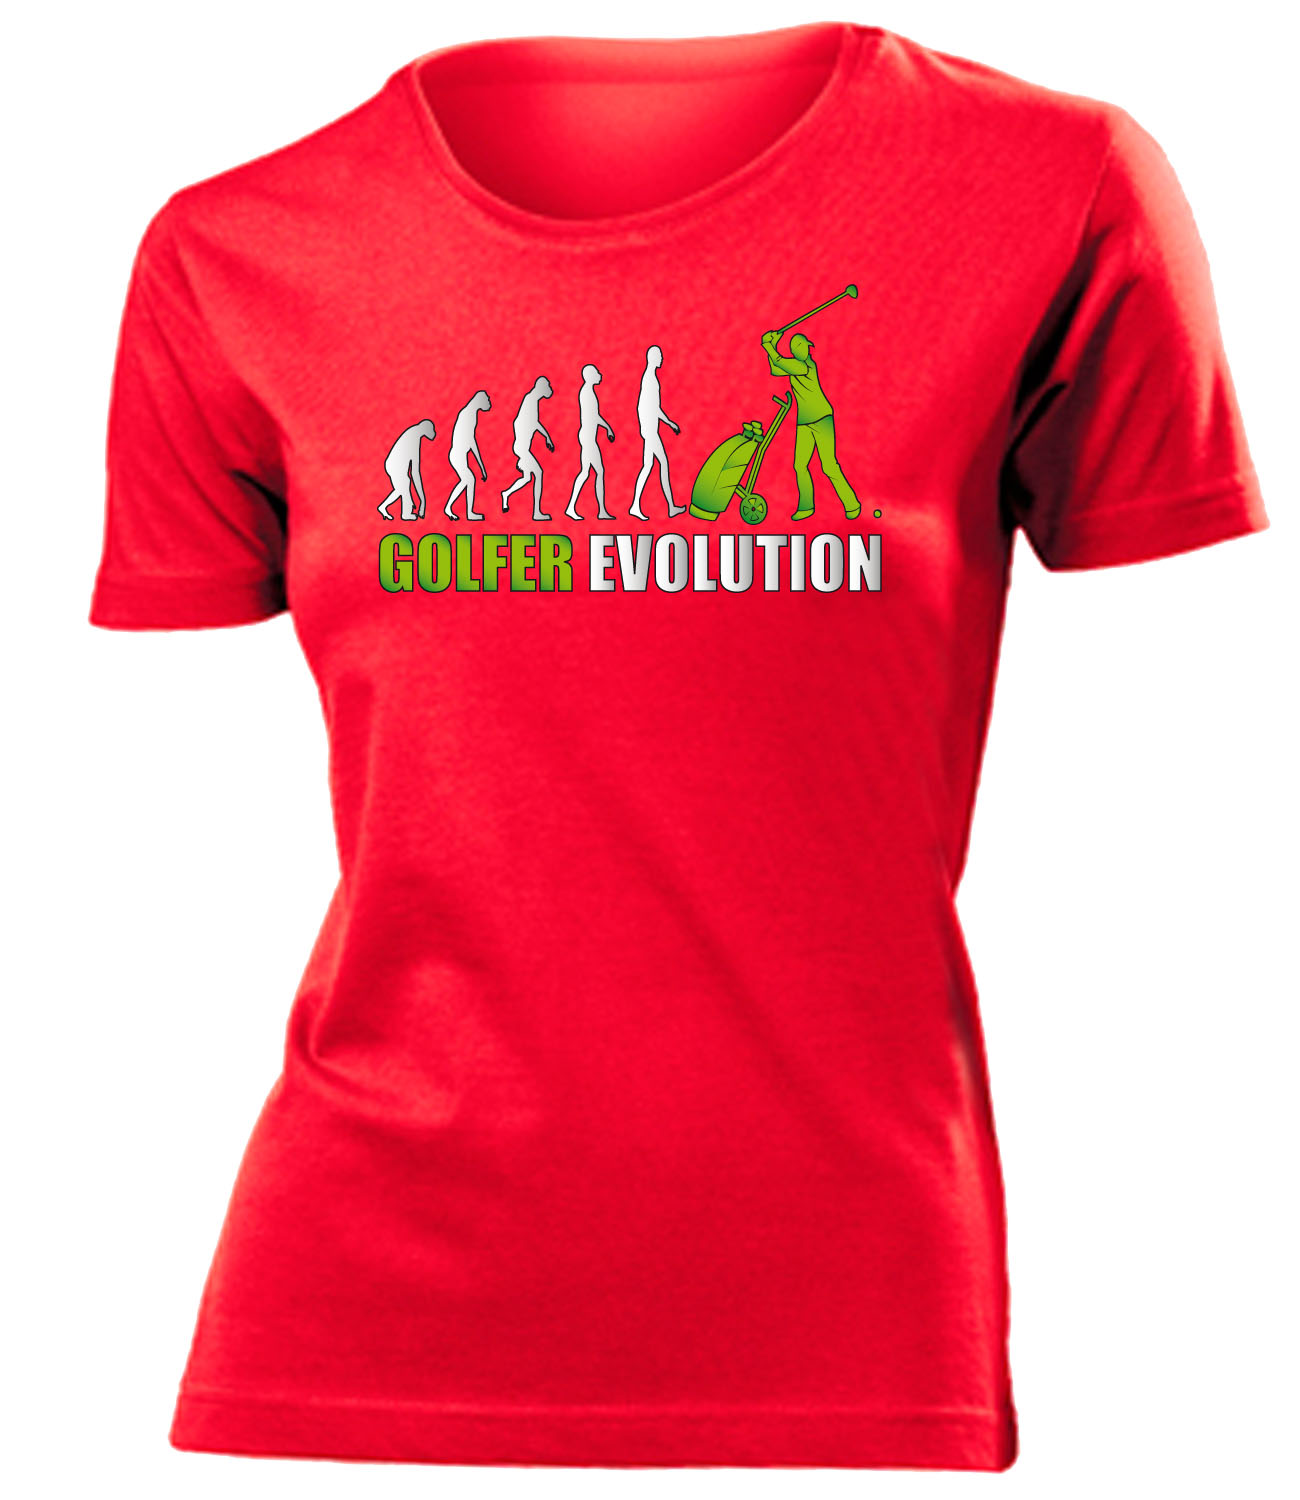 golfer evolution t shirt damen s xxl ebay. Black Bedroom Furniture Sets. Home Design Ideas